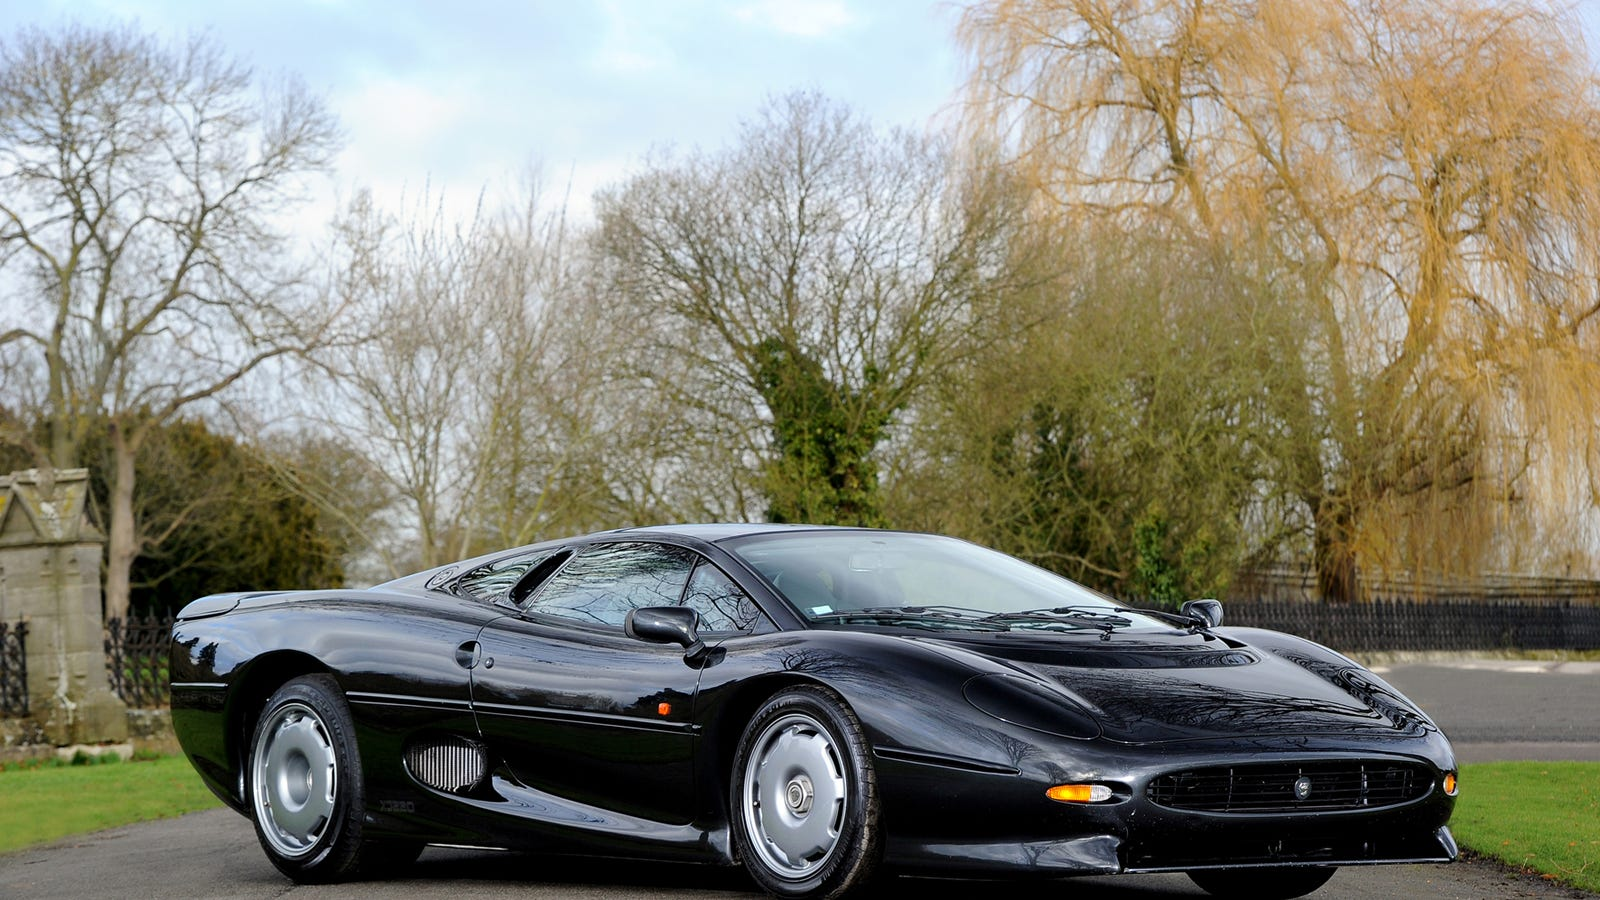 Jaguar Xj220 For Sale >> Has Jaguar ever made an ugly car?